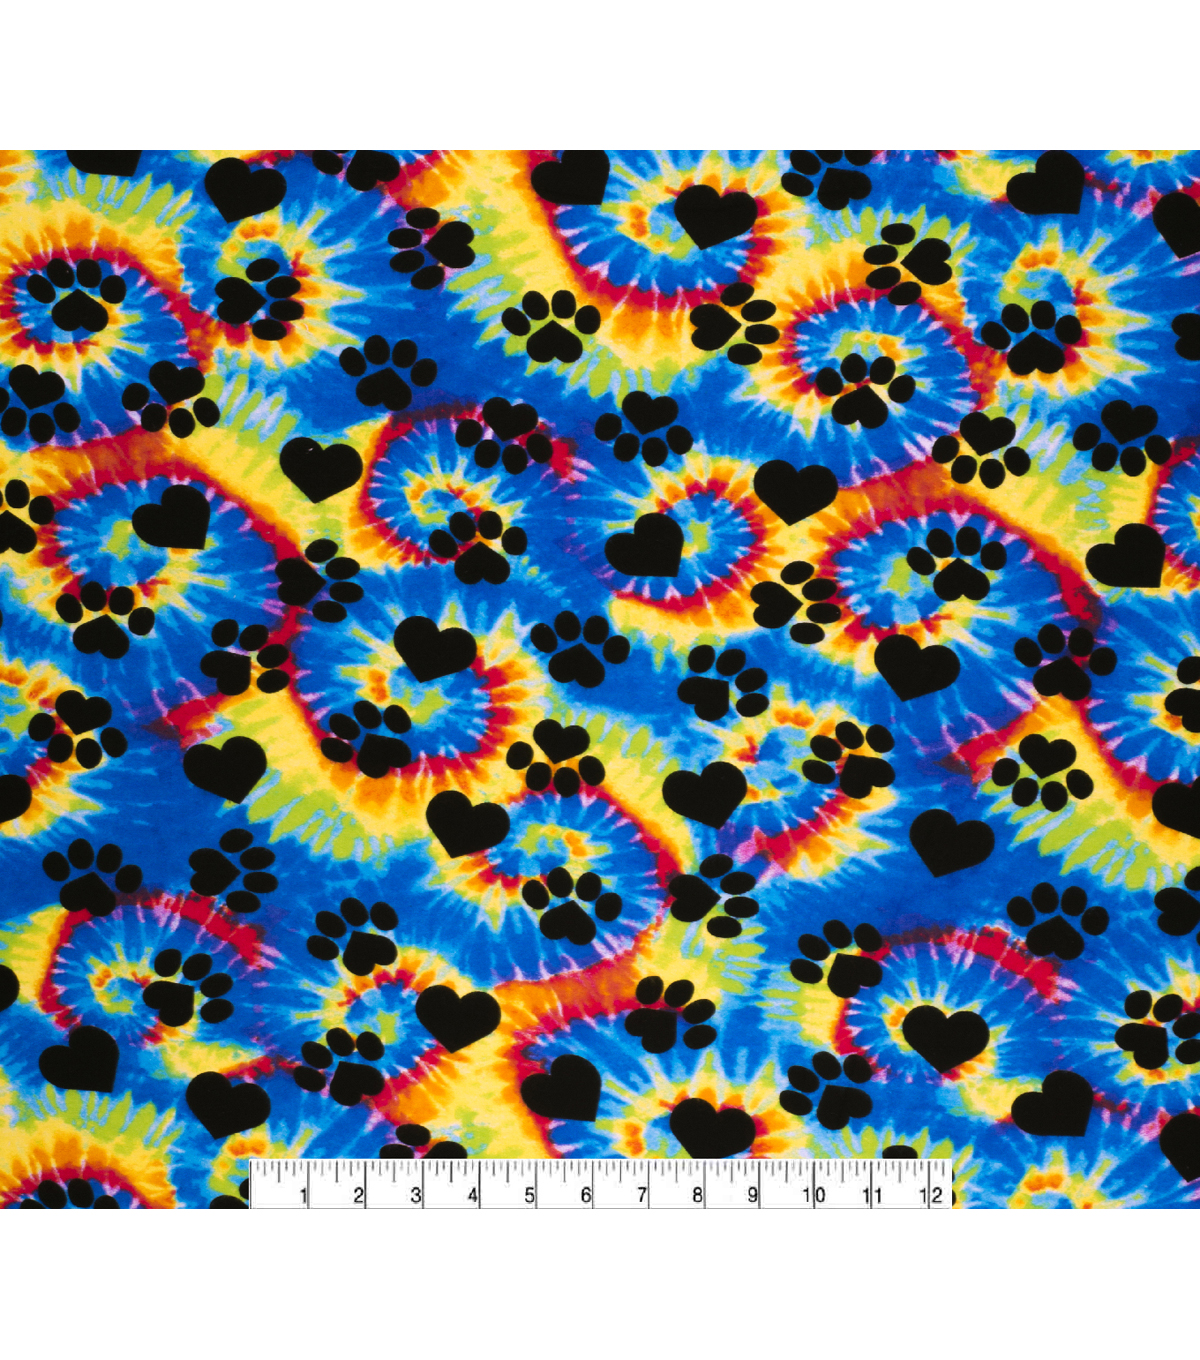 Super Snuggle Flannel Fabric-Tie Dye Puppy Paws and Hearts